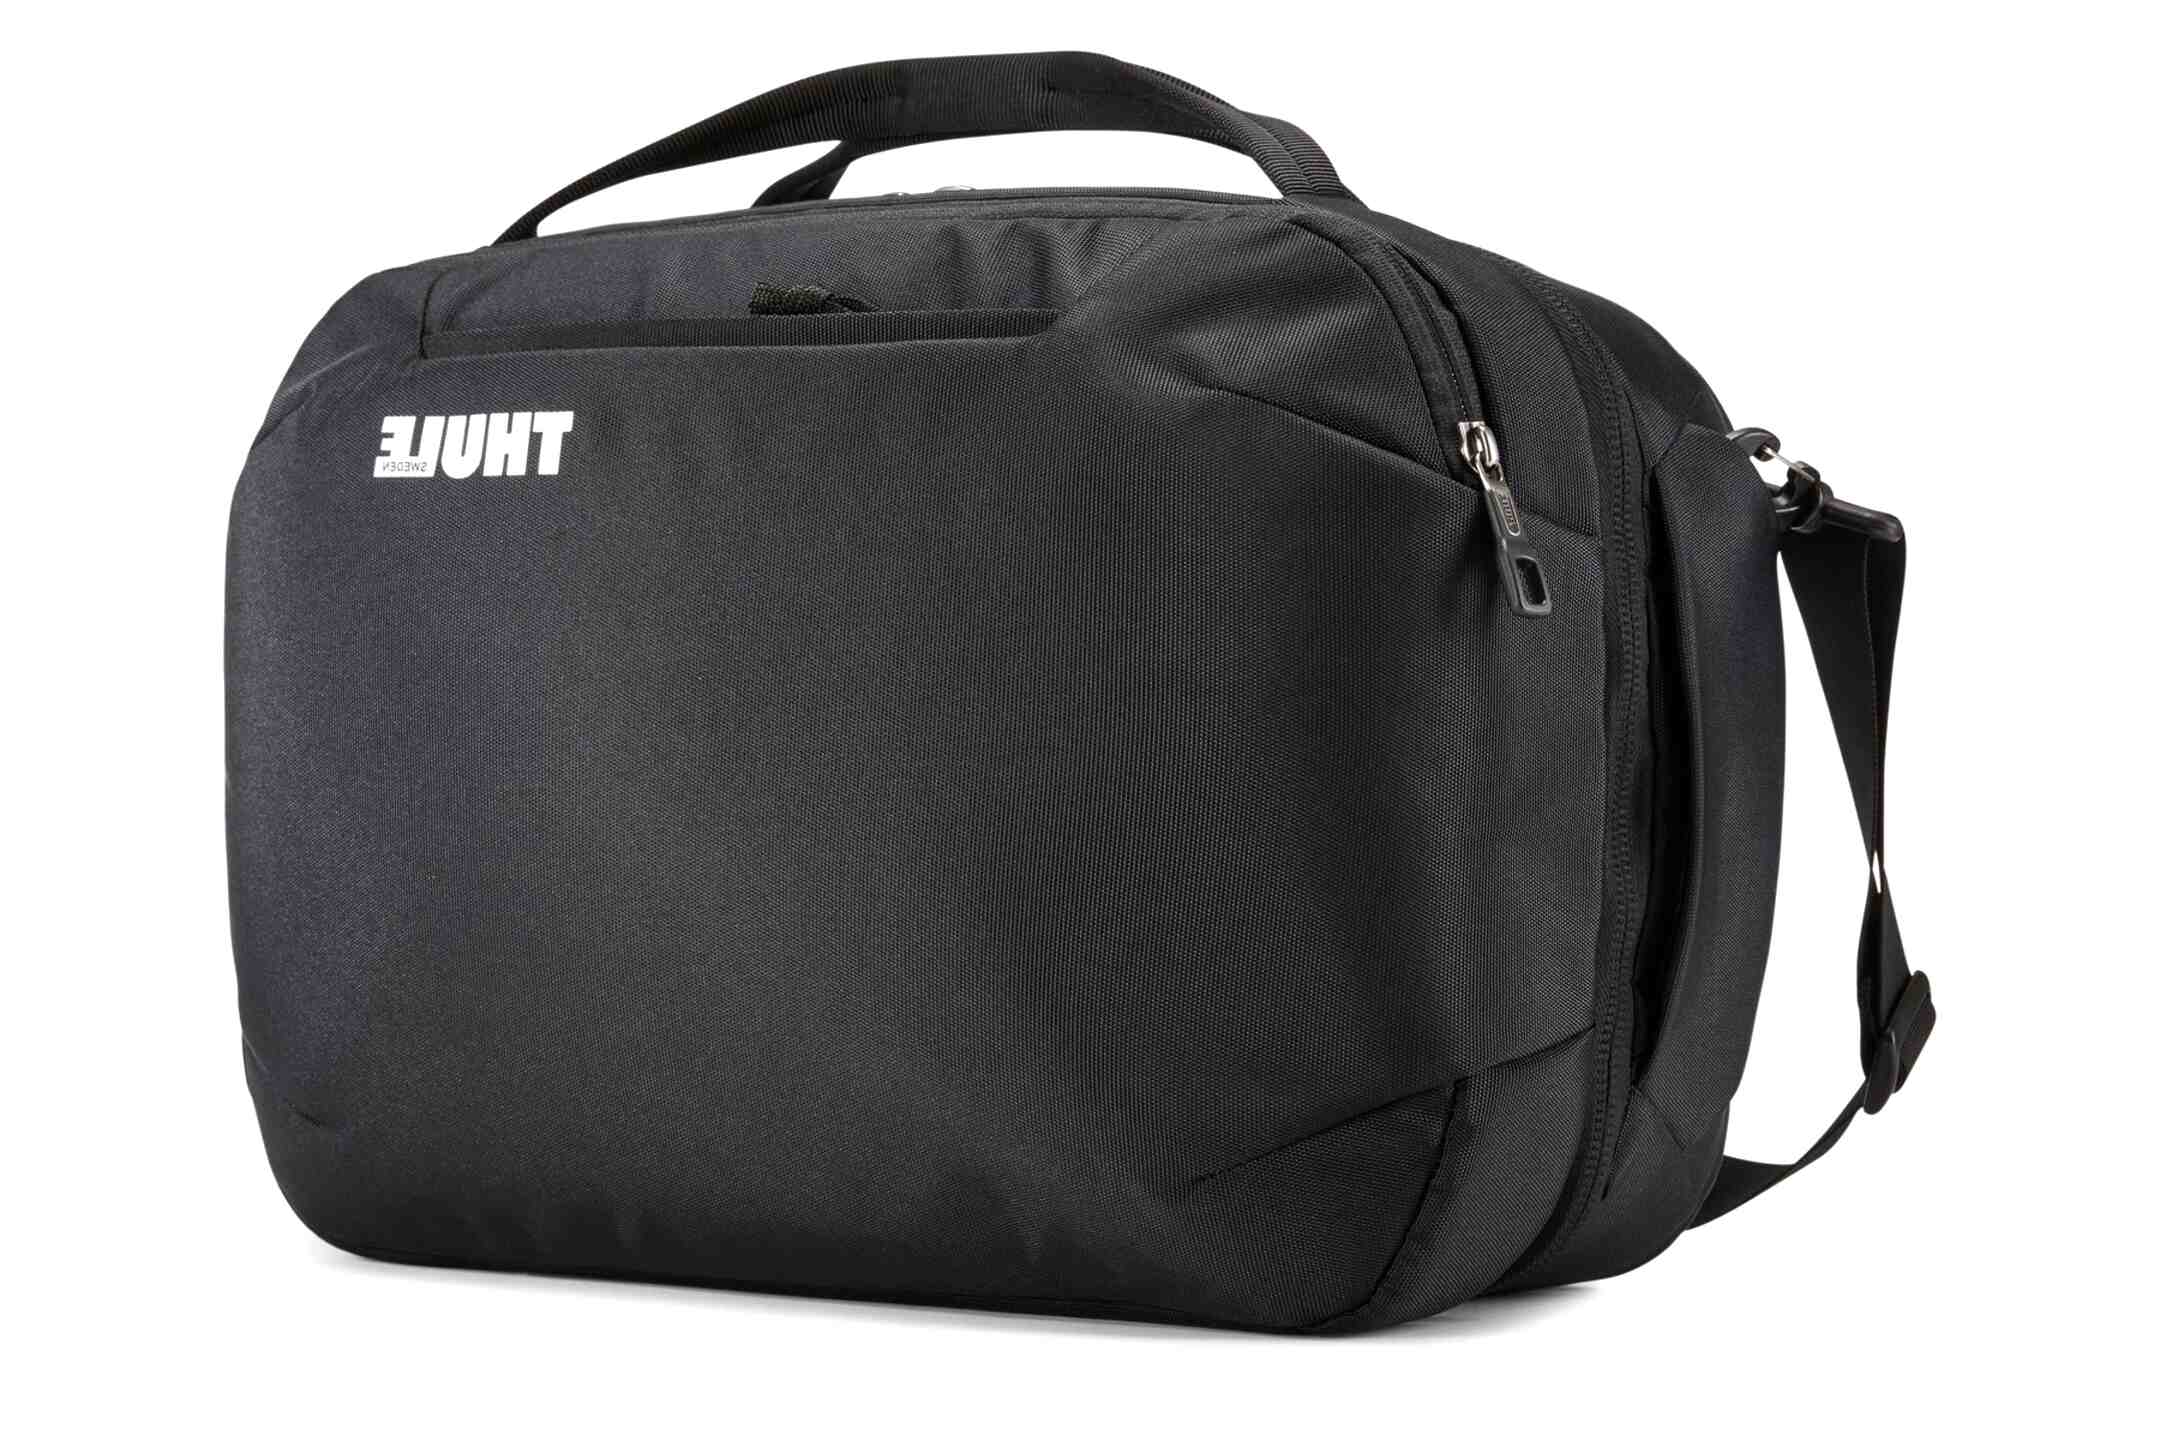 thule bag for sale